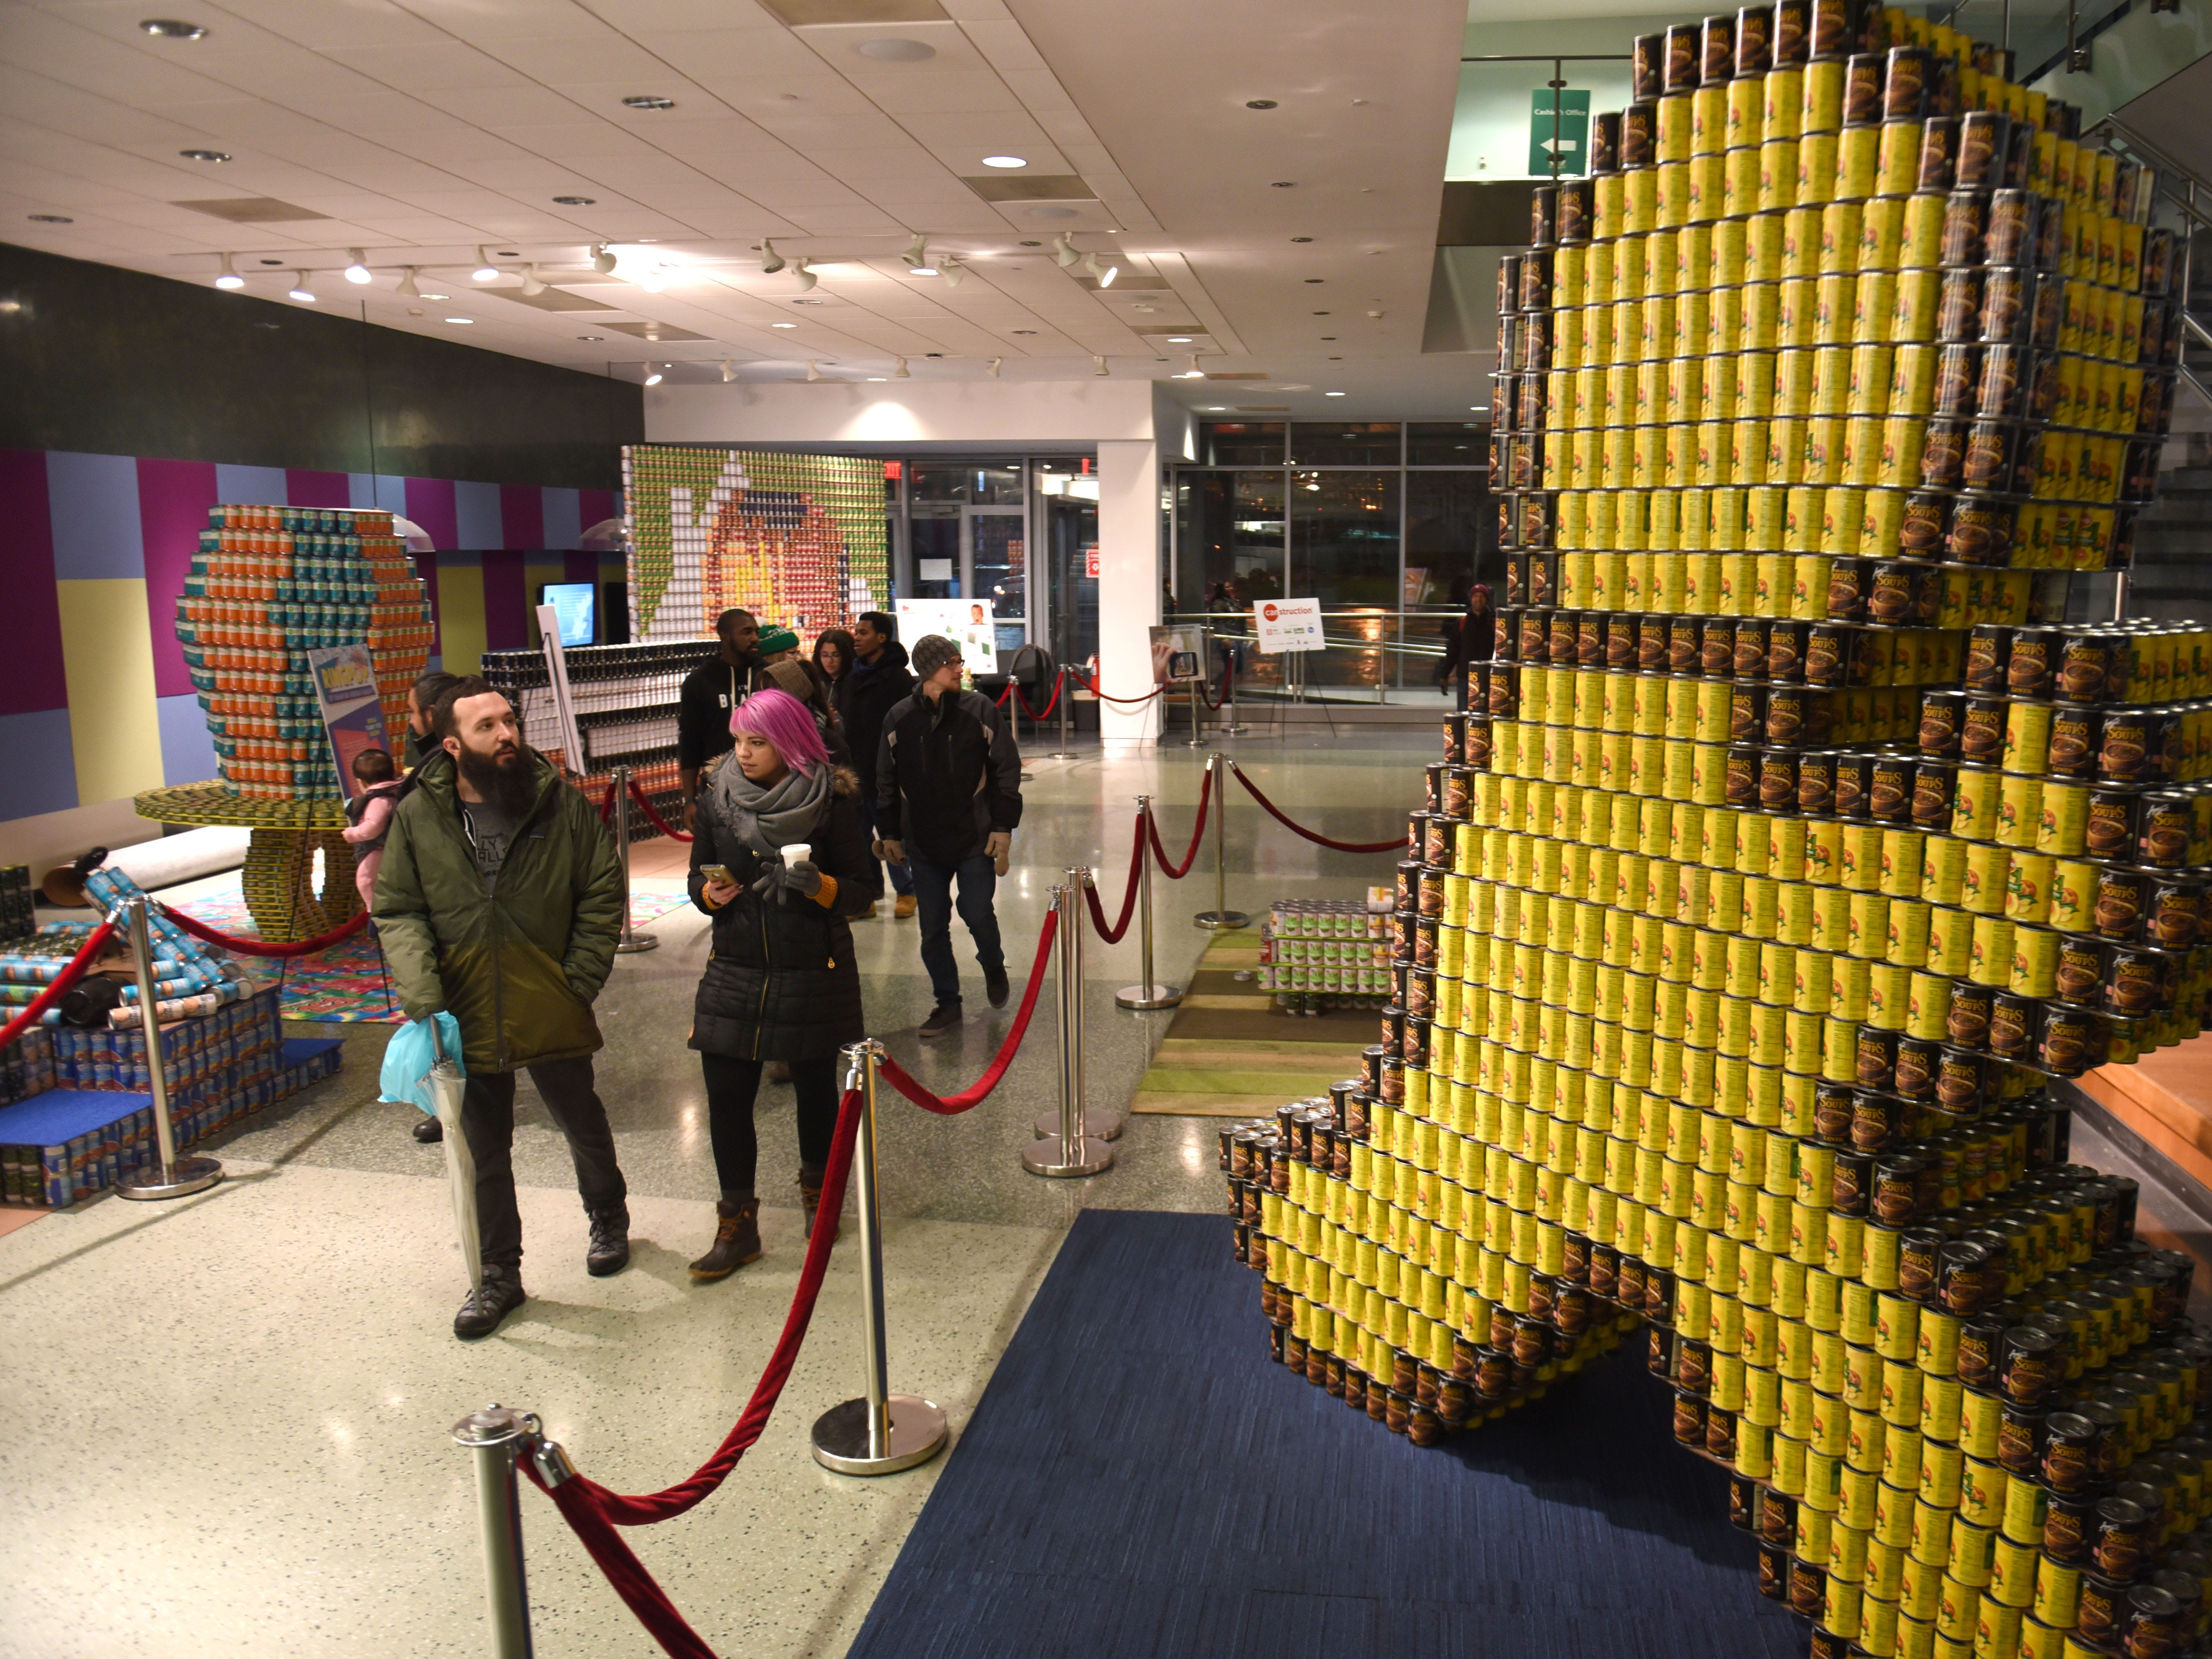 The can-struction display showcases a giant AOL messenger figure made of donated cans inside Wayne State University's Welcome Center  which benefits Gleaners Food Bank during Noel Night.